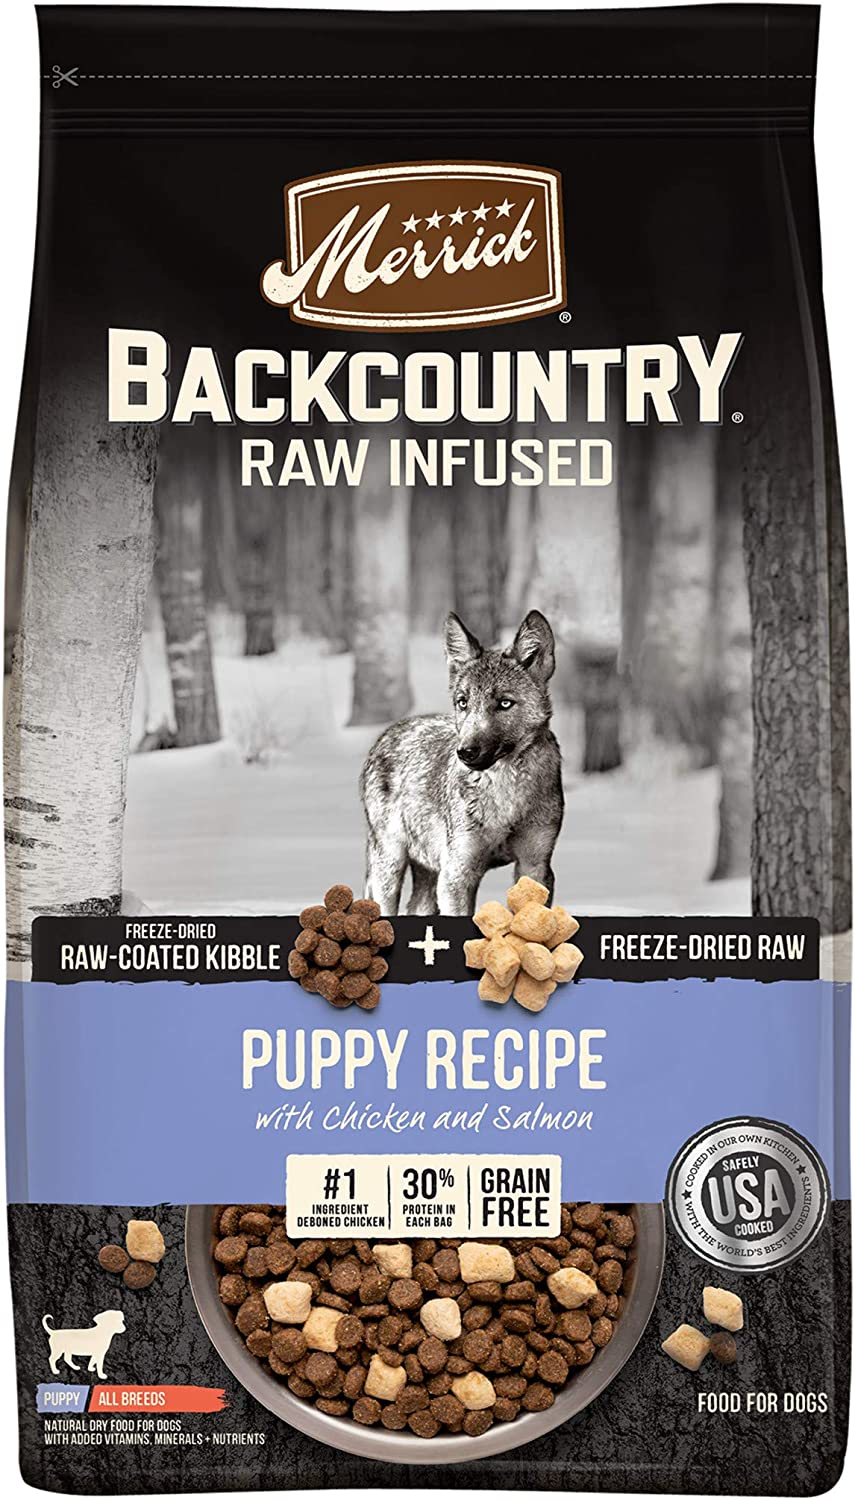 Merrick Backcountry Raw Infused Grain Free Dry Dog Food Puppy Recipe - 10.0 lb Bag